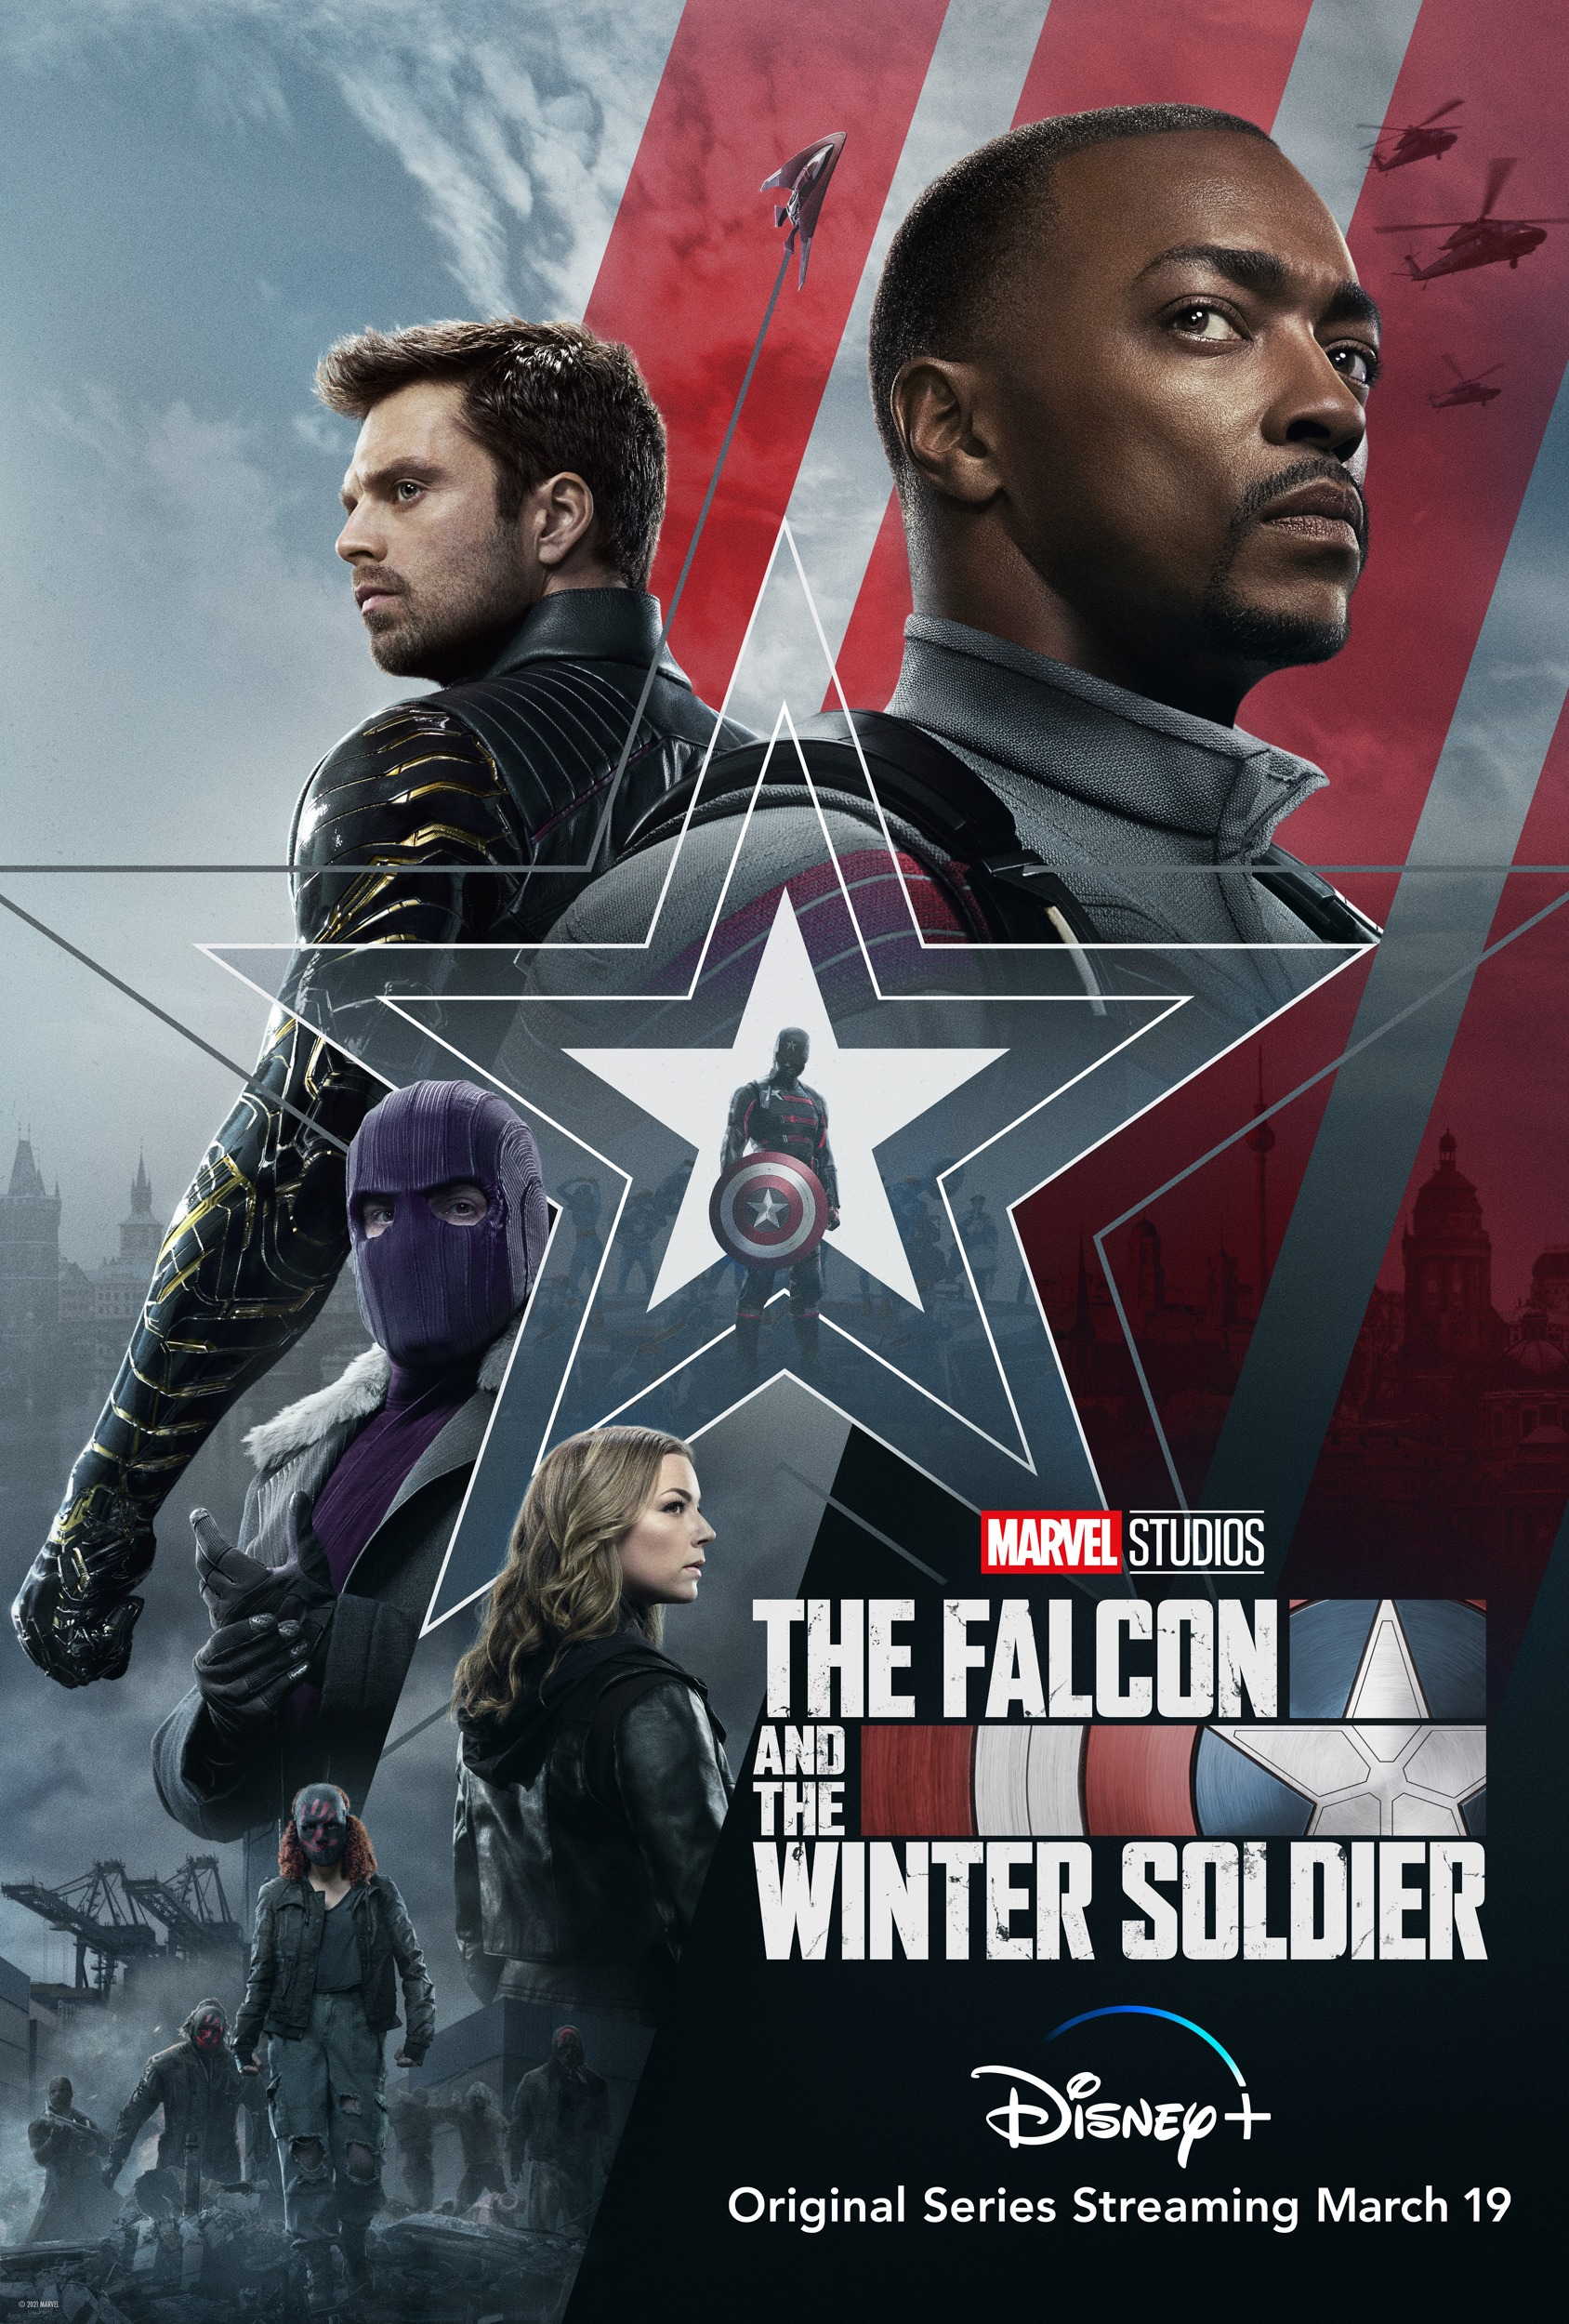 The Falcon and the Winter Soldier (2021) Hindi Dubbed Official Trailer 1080p HDRip Download